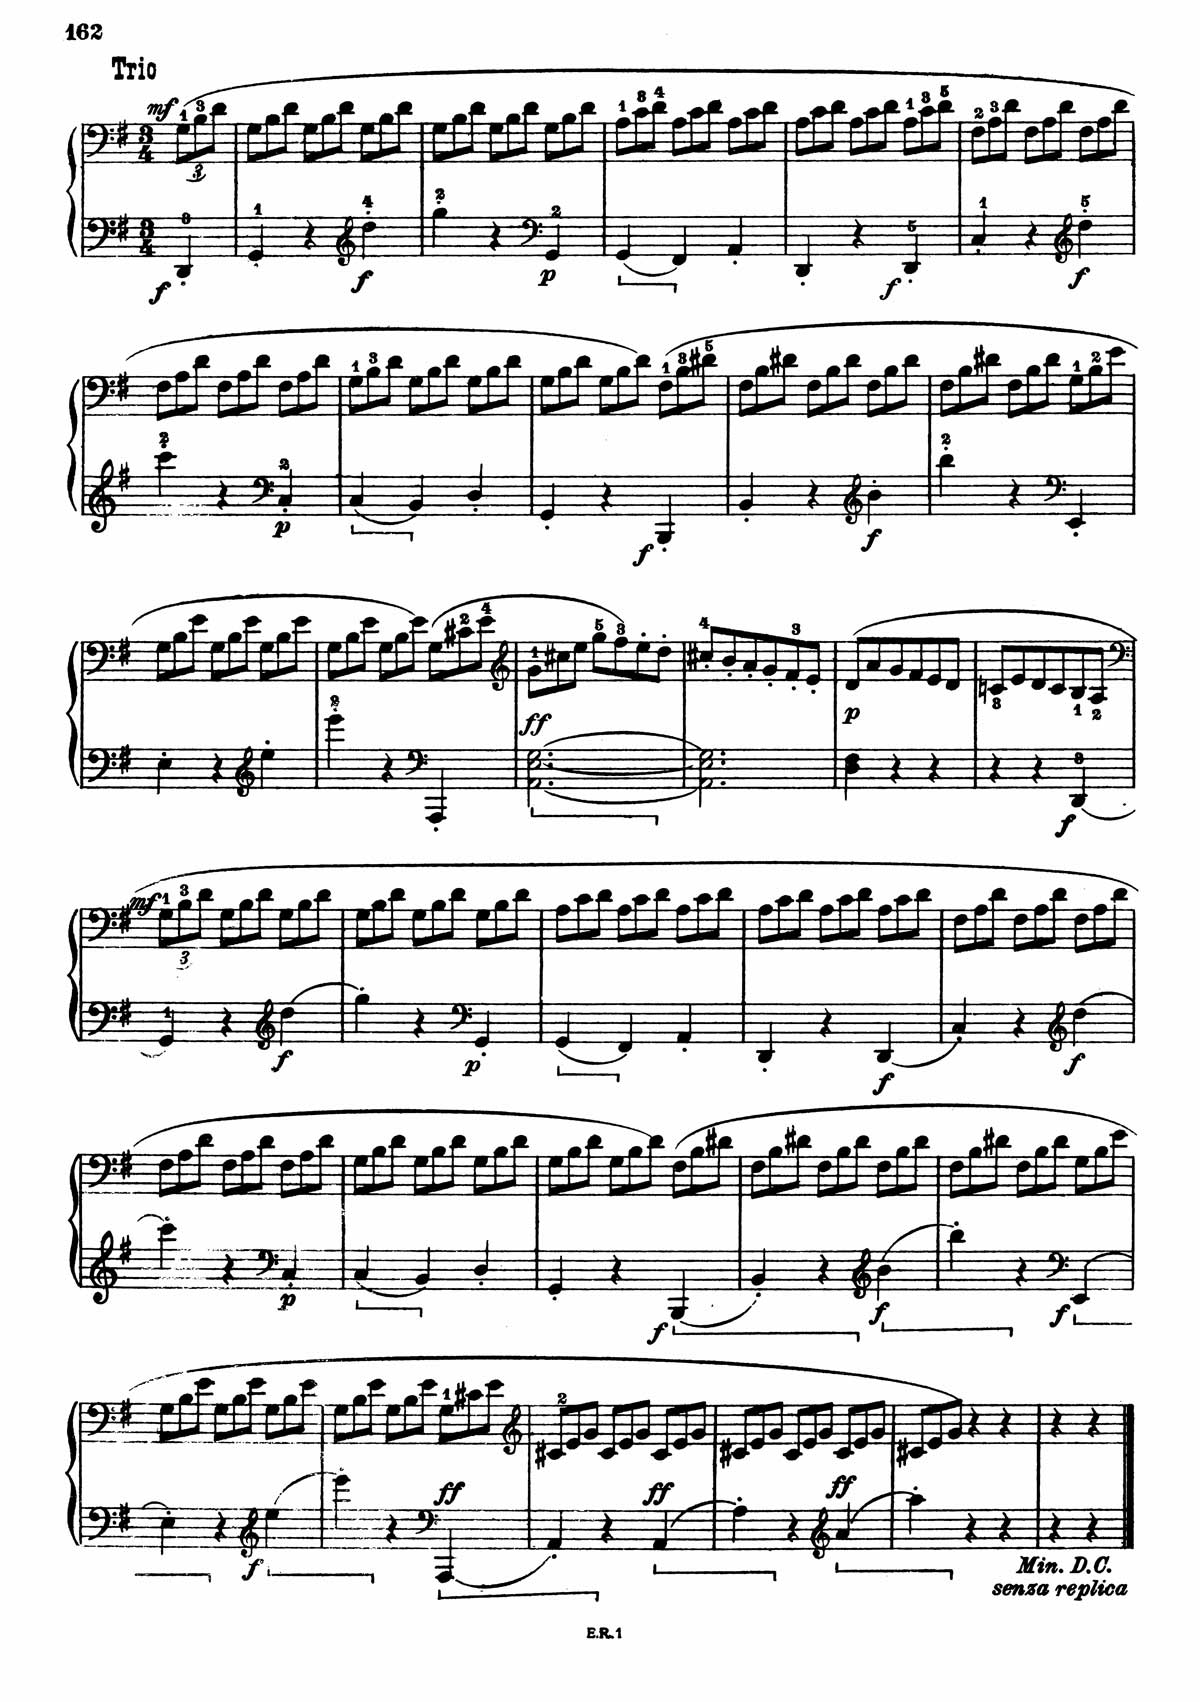 Beethoven Piano Sonata 7-18 sheet music